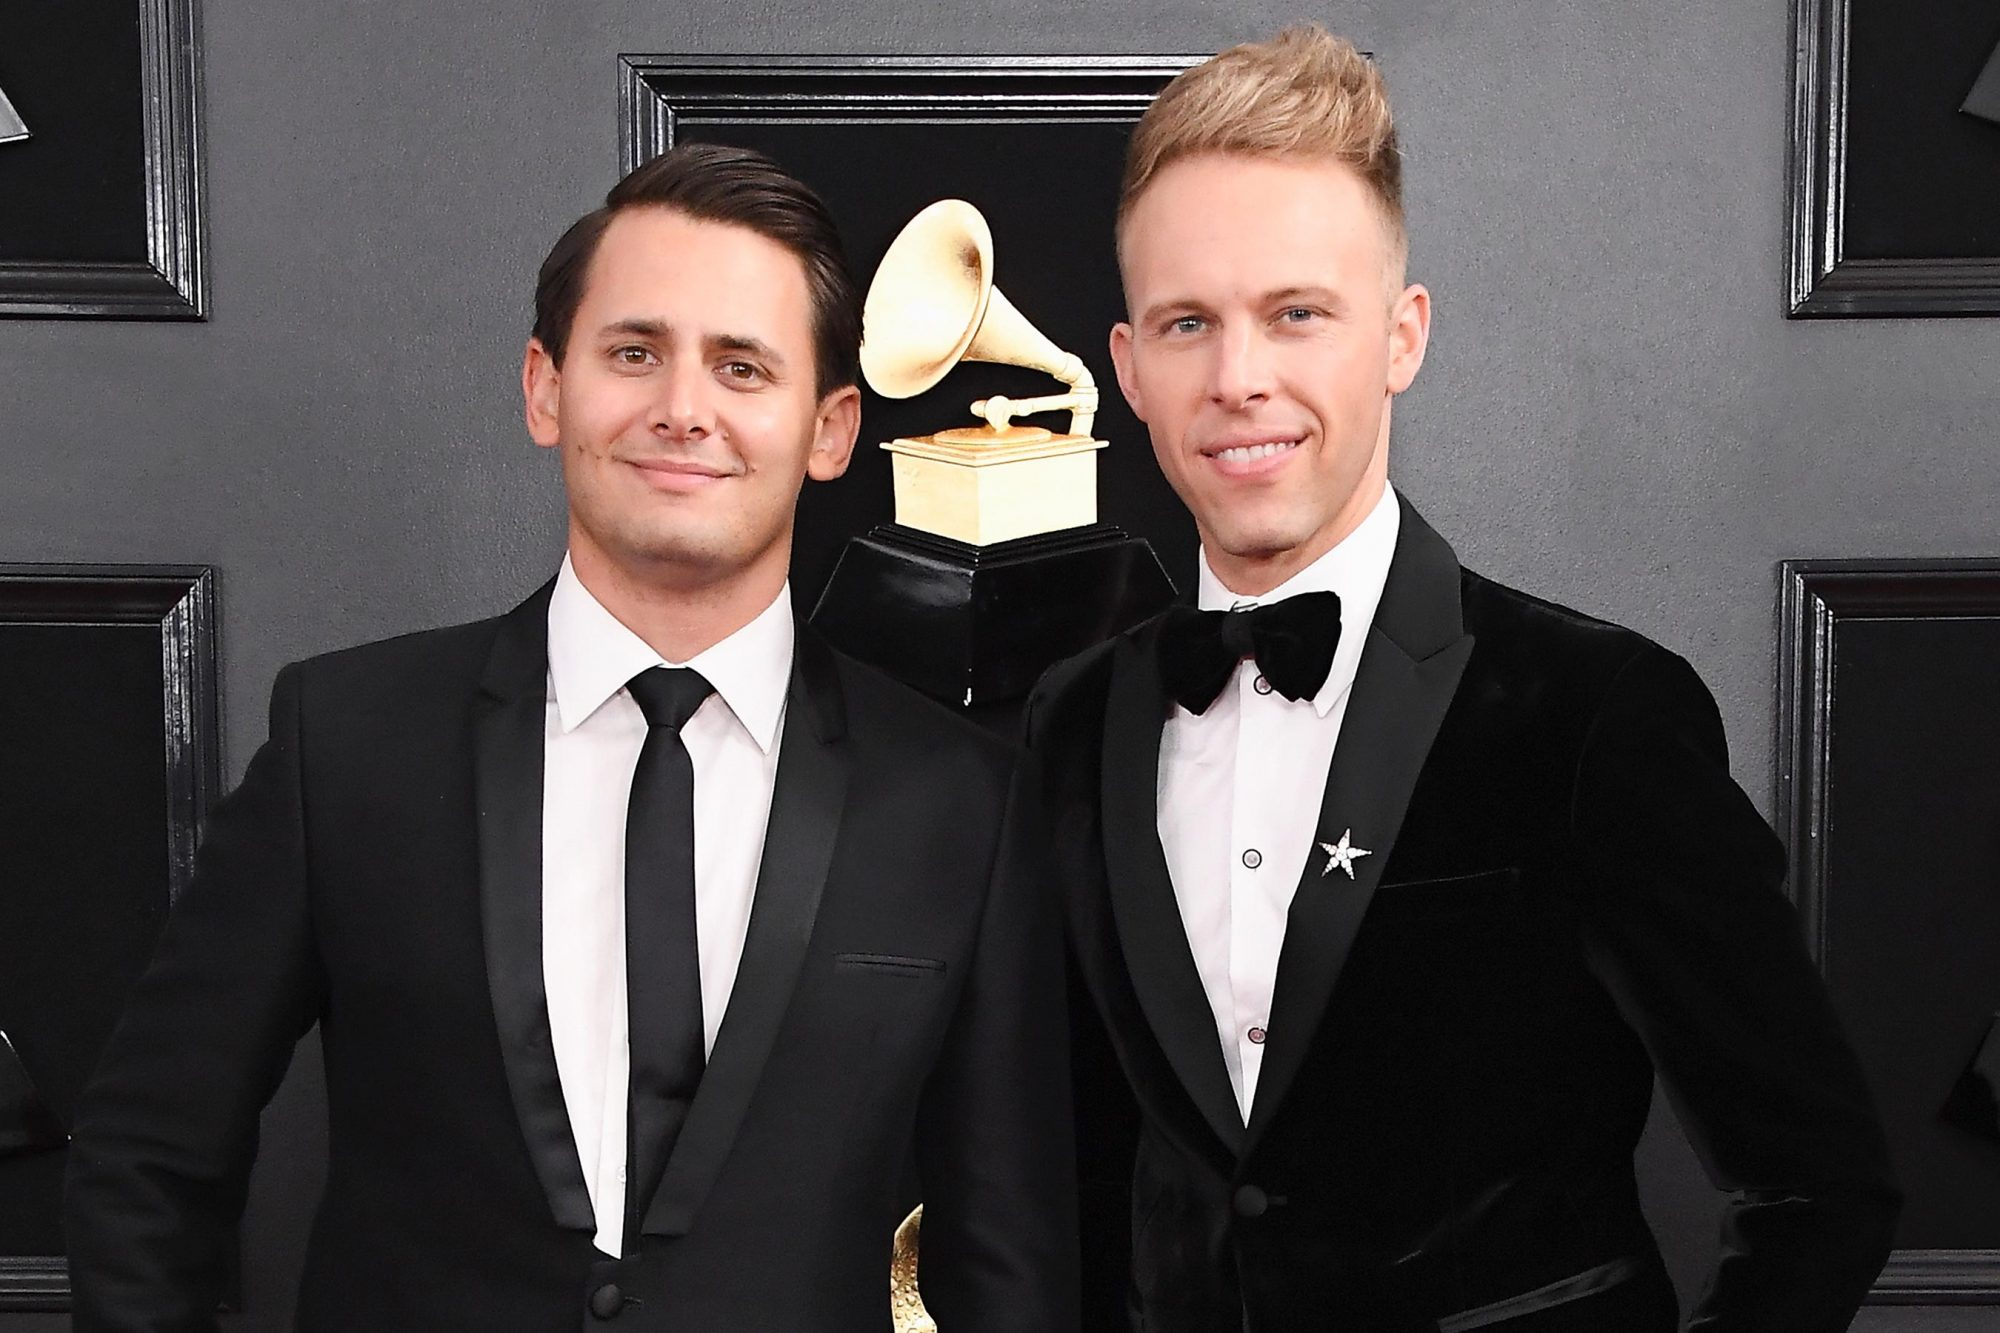 LOS ANGELES, CA - FEBRUARY 10: Benj Pasek (L) and Justin Paul attend the 61st Annual GRAMMY Awards at Staples Center on February 10, 2019 in Los Angeles, California. (Photo by Steve Granitz/WireImage)